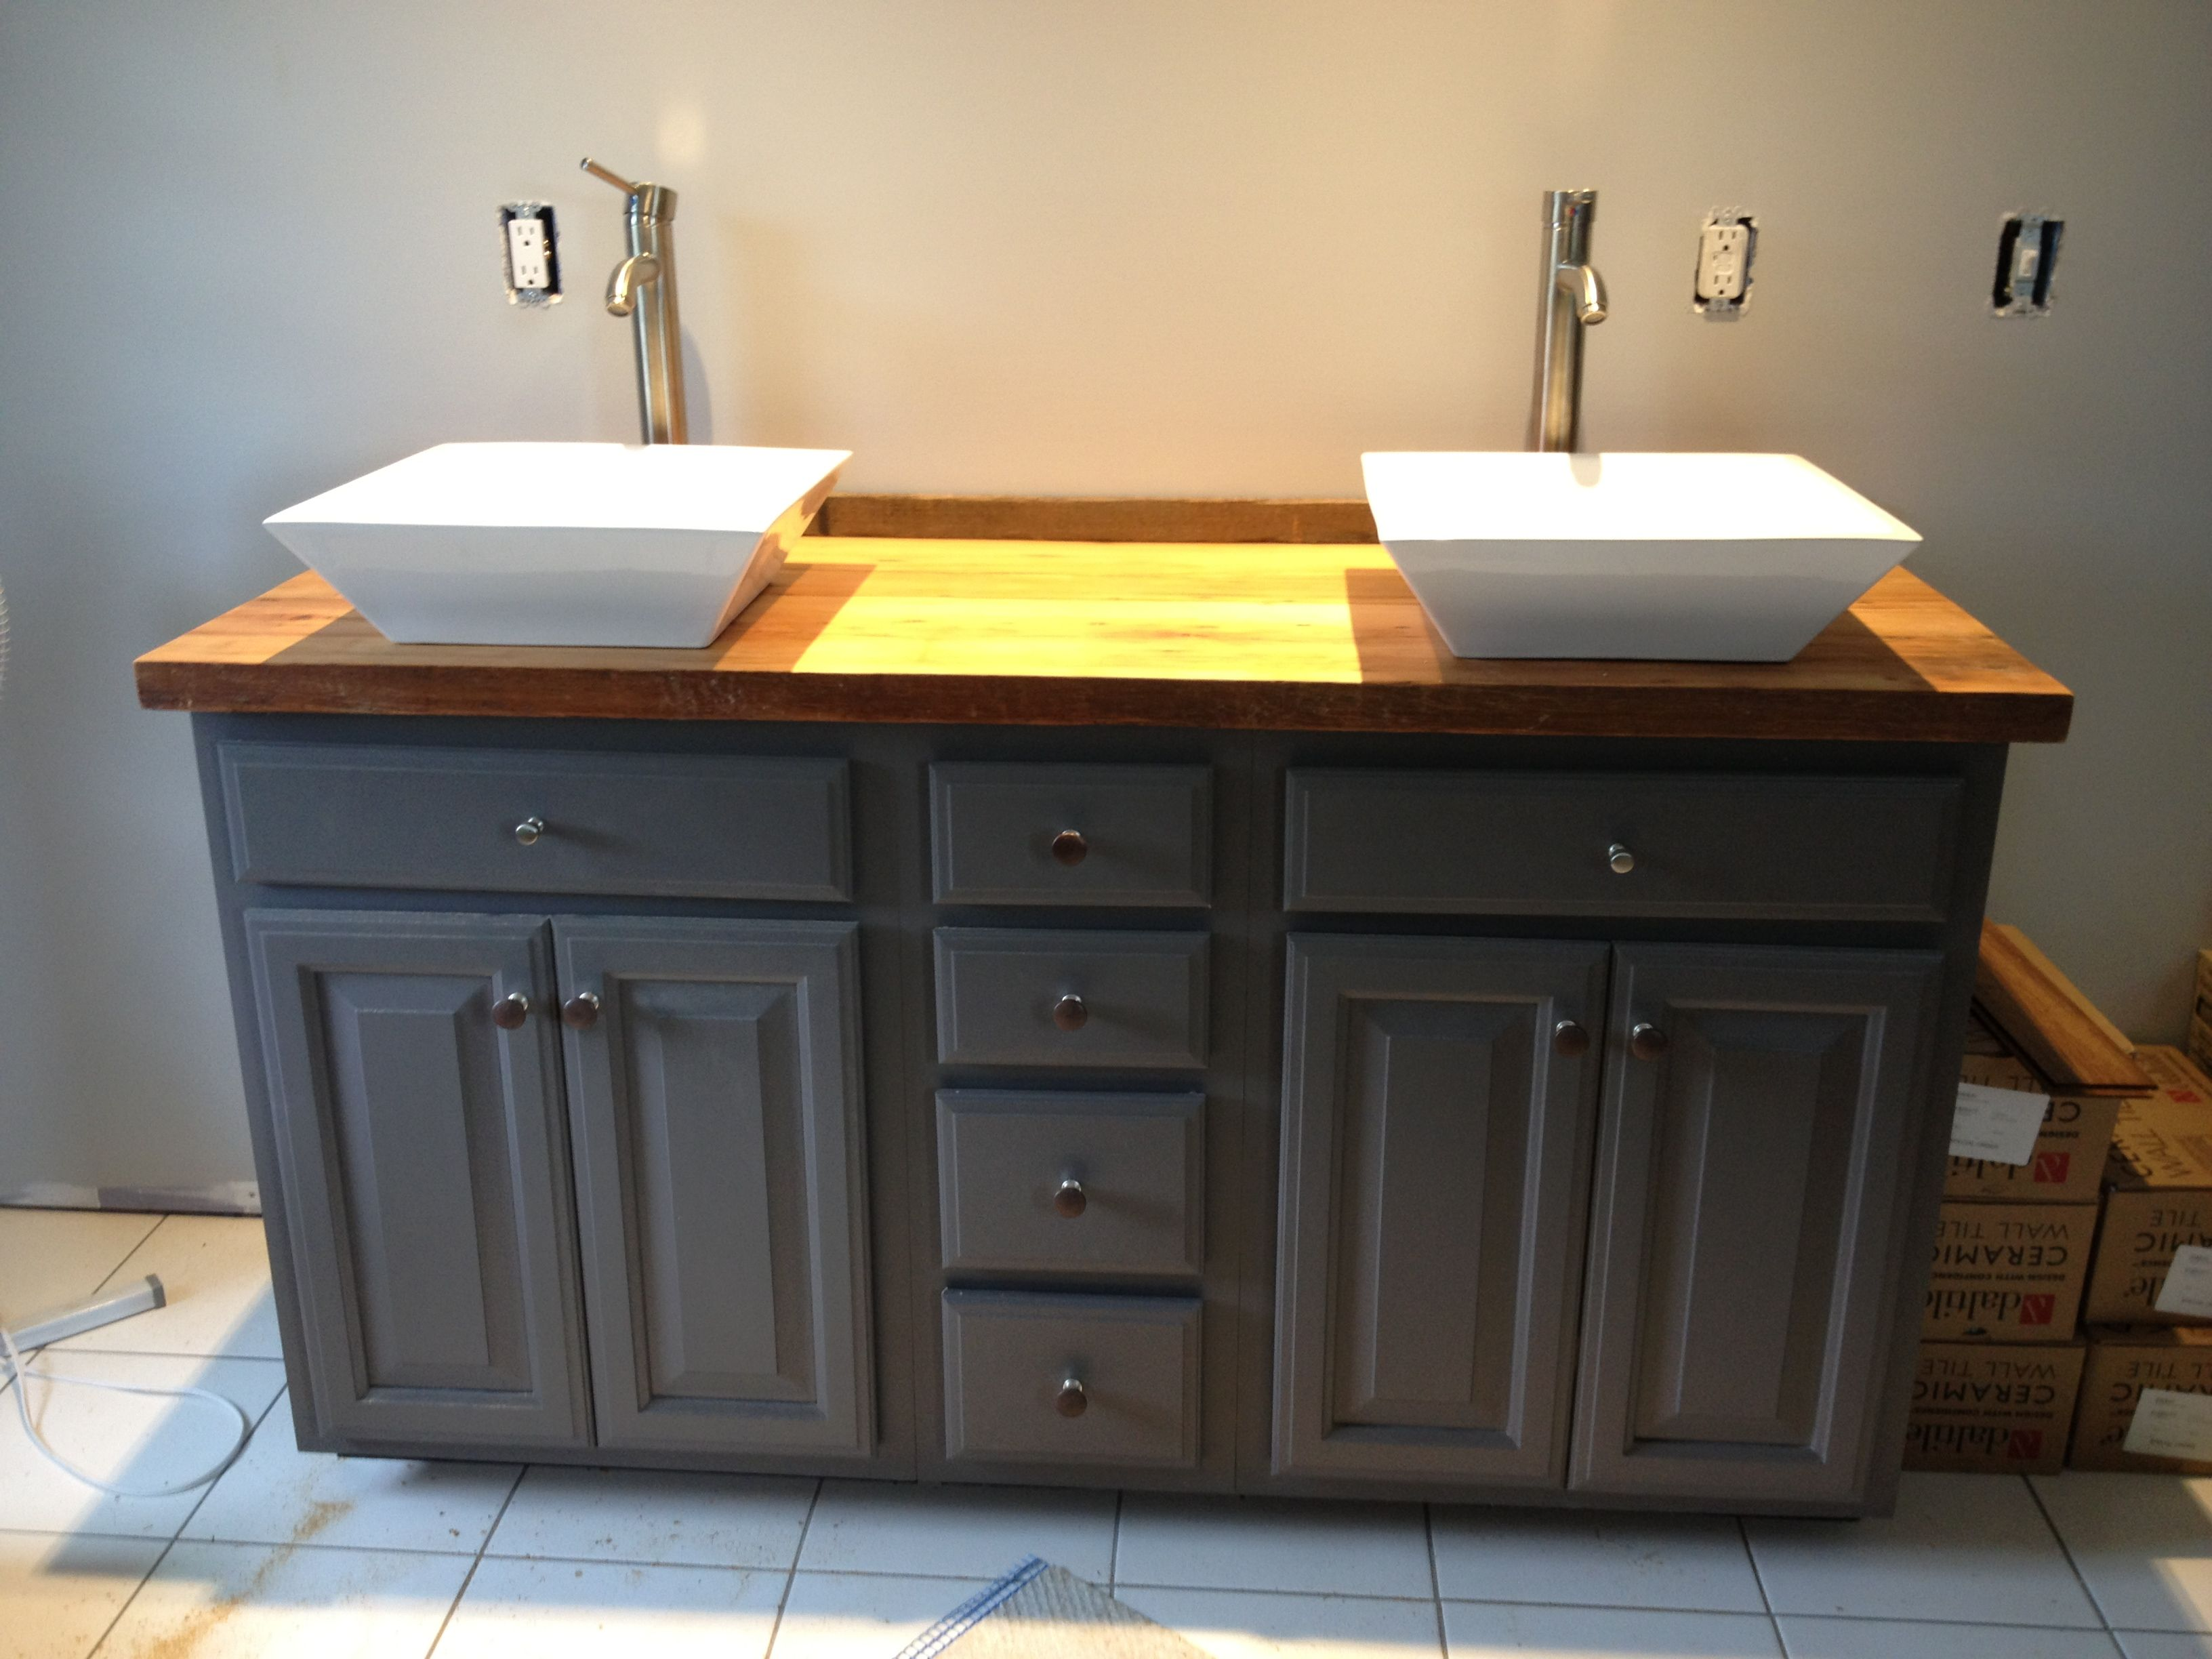 Diy Bathroom Vanity Used The Barn Wood Hemlock Pieces